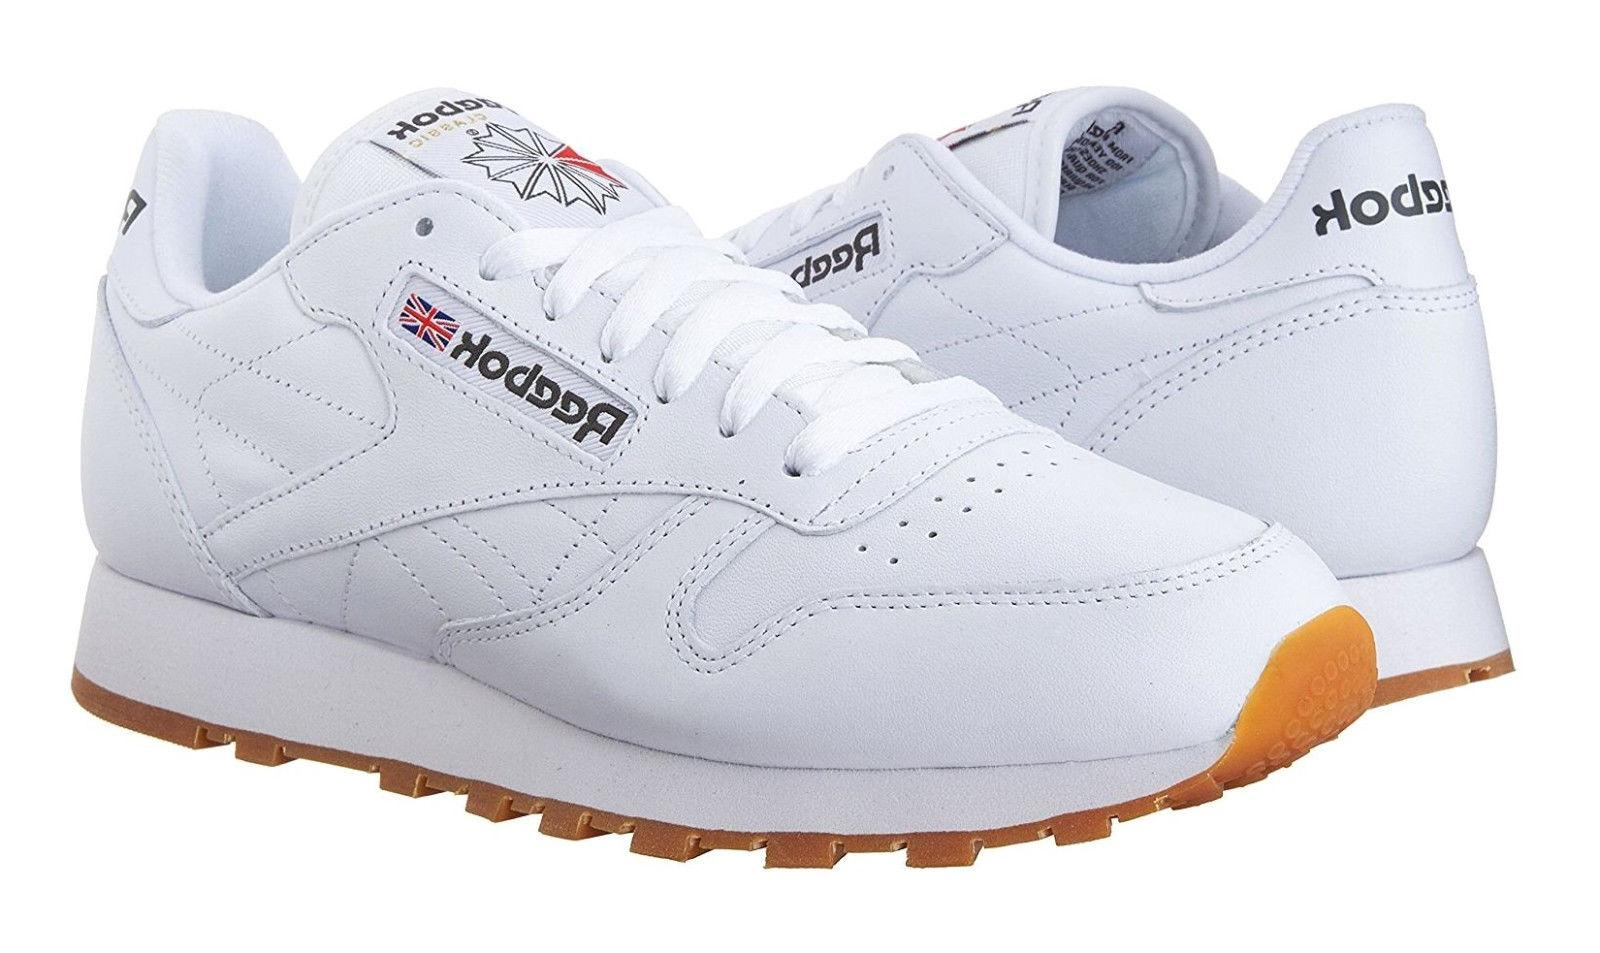 a1372692335 Reebok Classic Leather Gum Mens Running Shoes